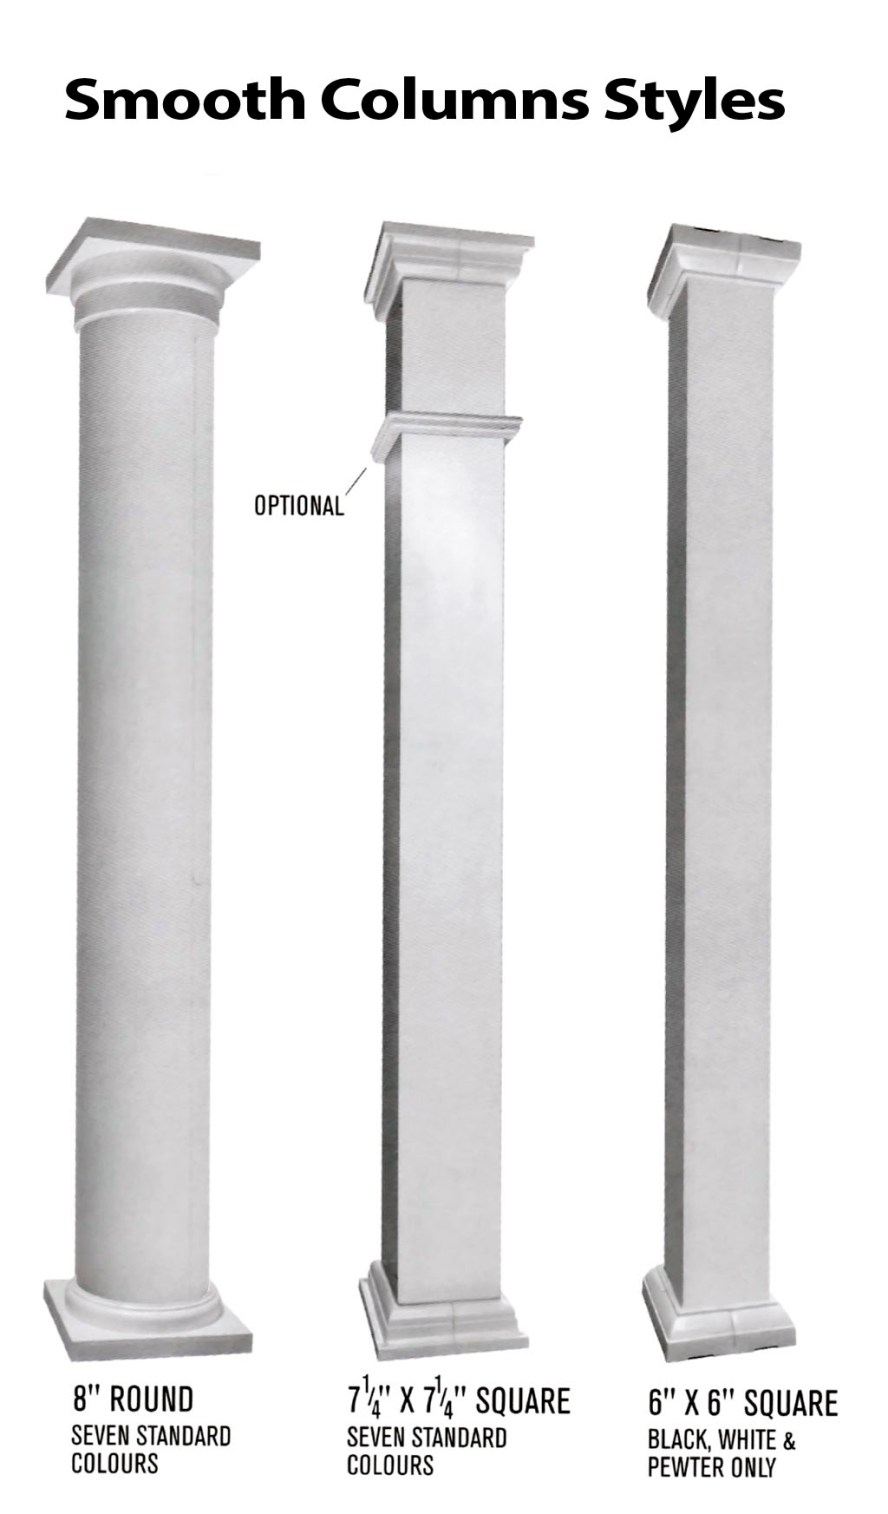 TorontoProRailings-Aluminum-Smooth-Columns-Styles